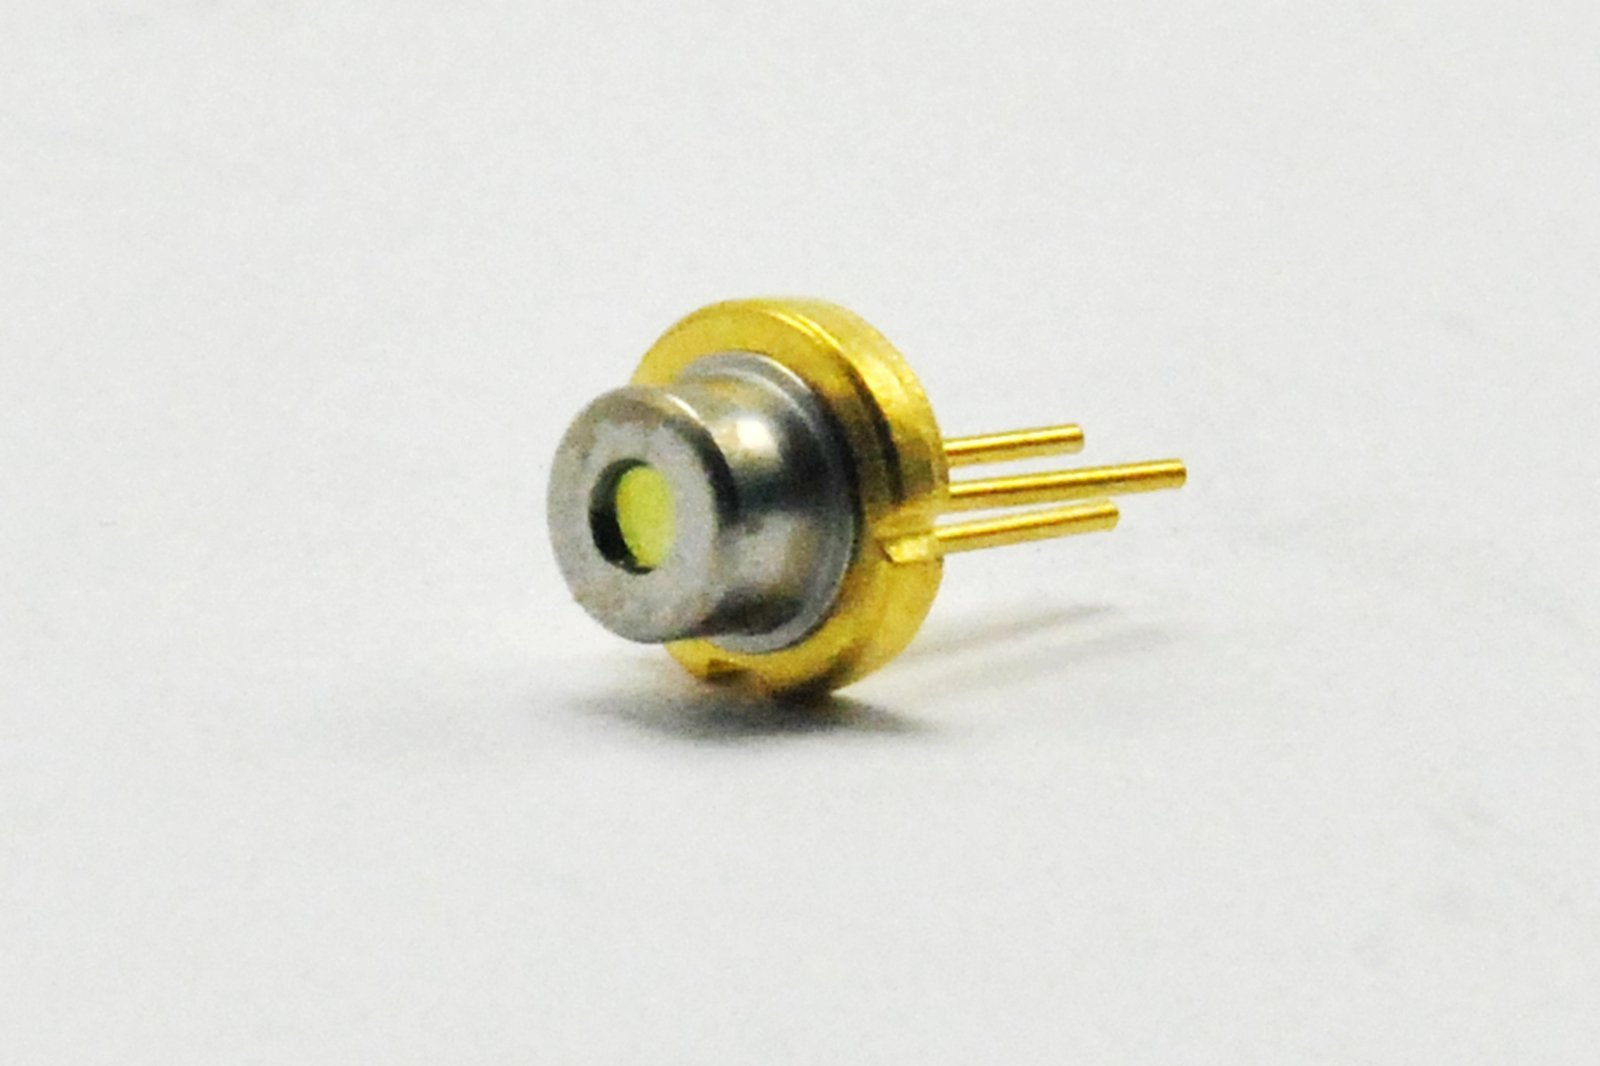 ML101J25 650- 660- 100 CW Red Laser Diode LD